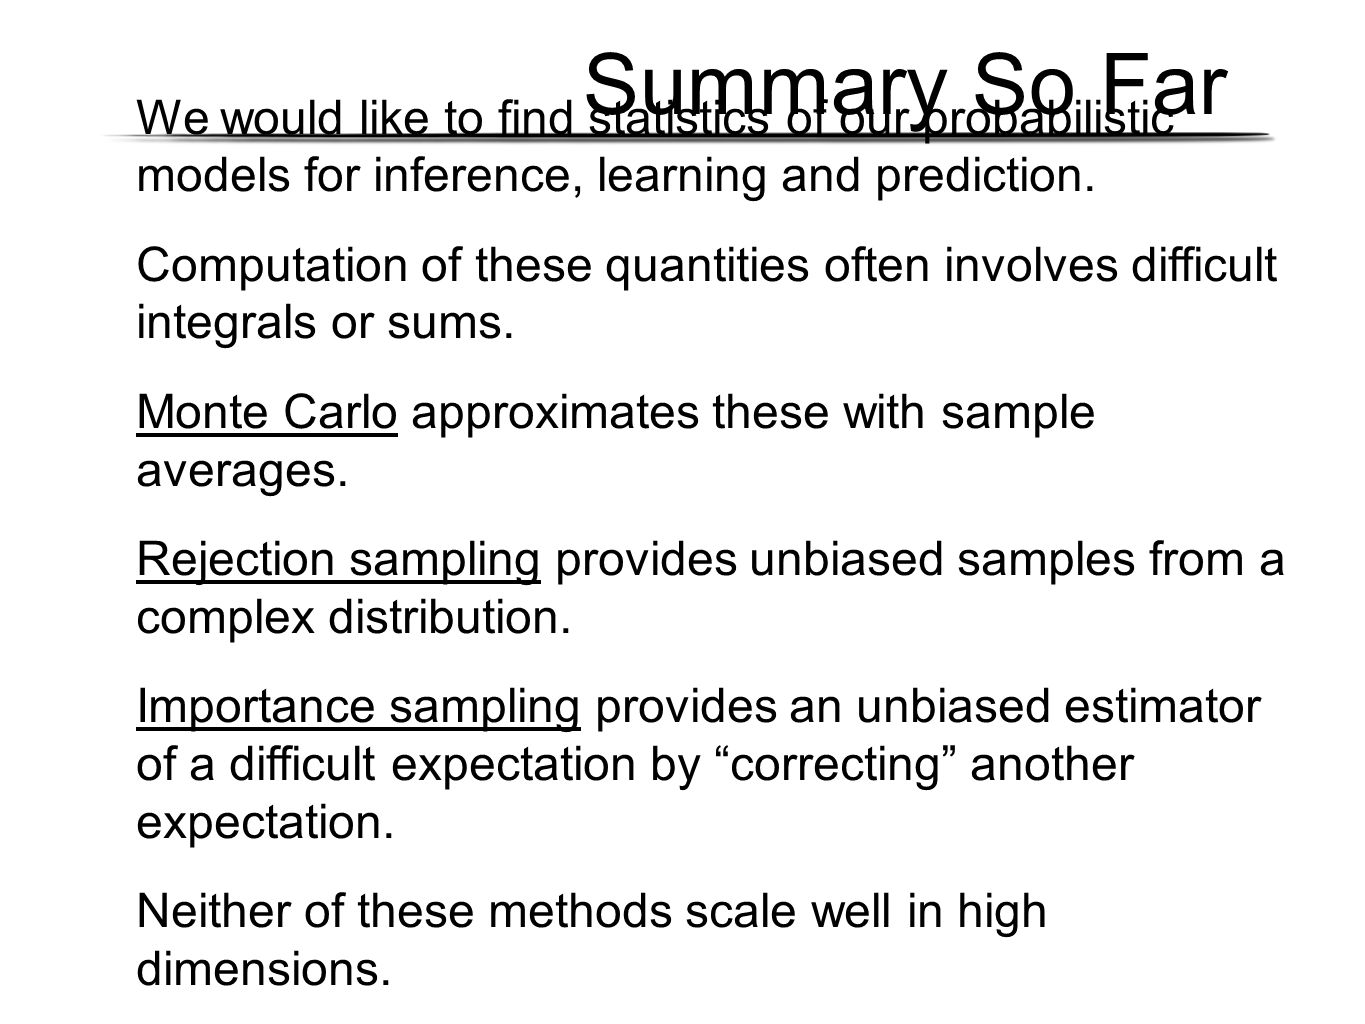 Summary So Far We would like to find statistics of our probabilistic models for inference, learning and prediction. Computation of these quantities of